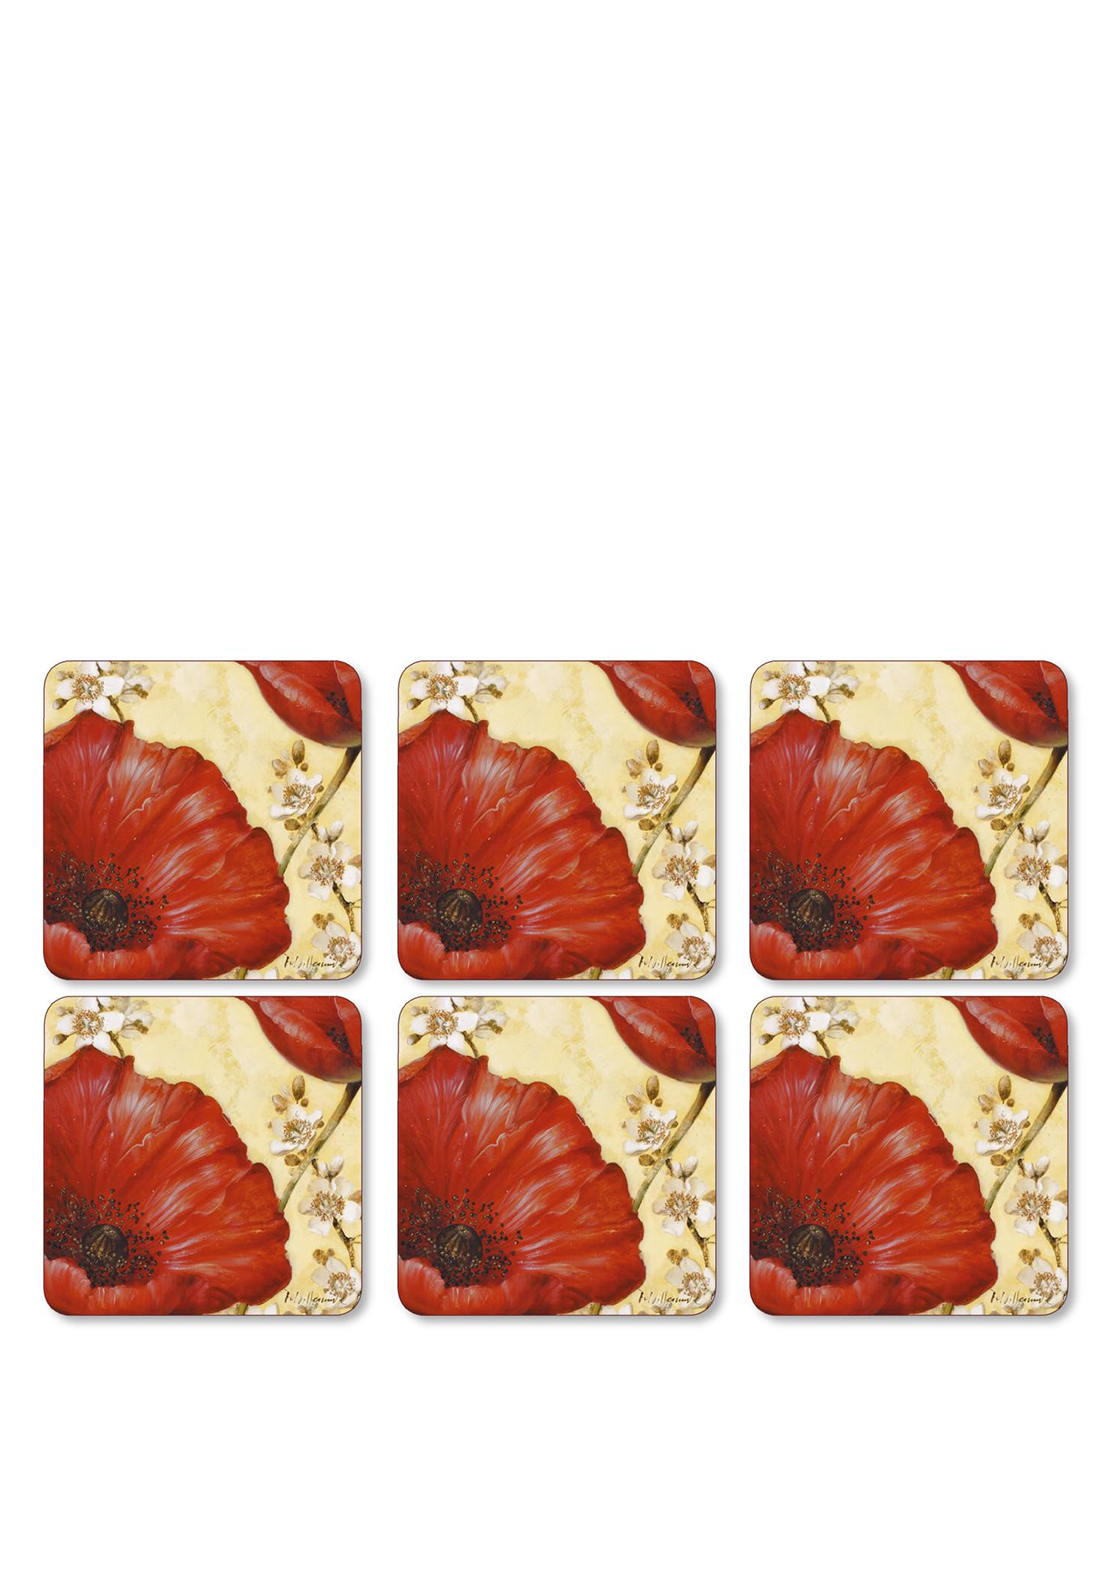 Pimpernel Poppy de Villeneuve Set of 6 Coasters